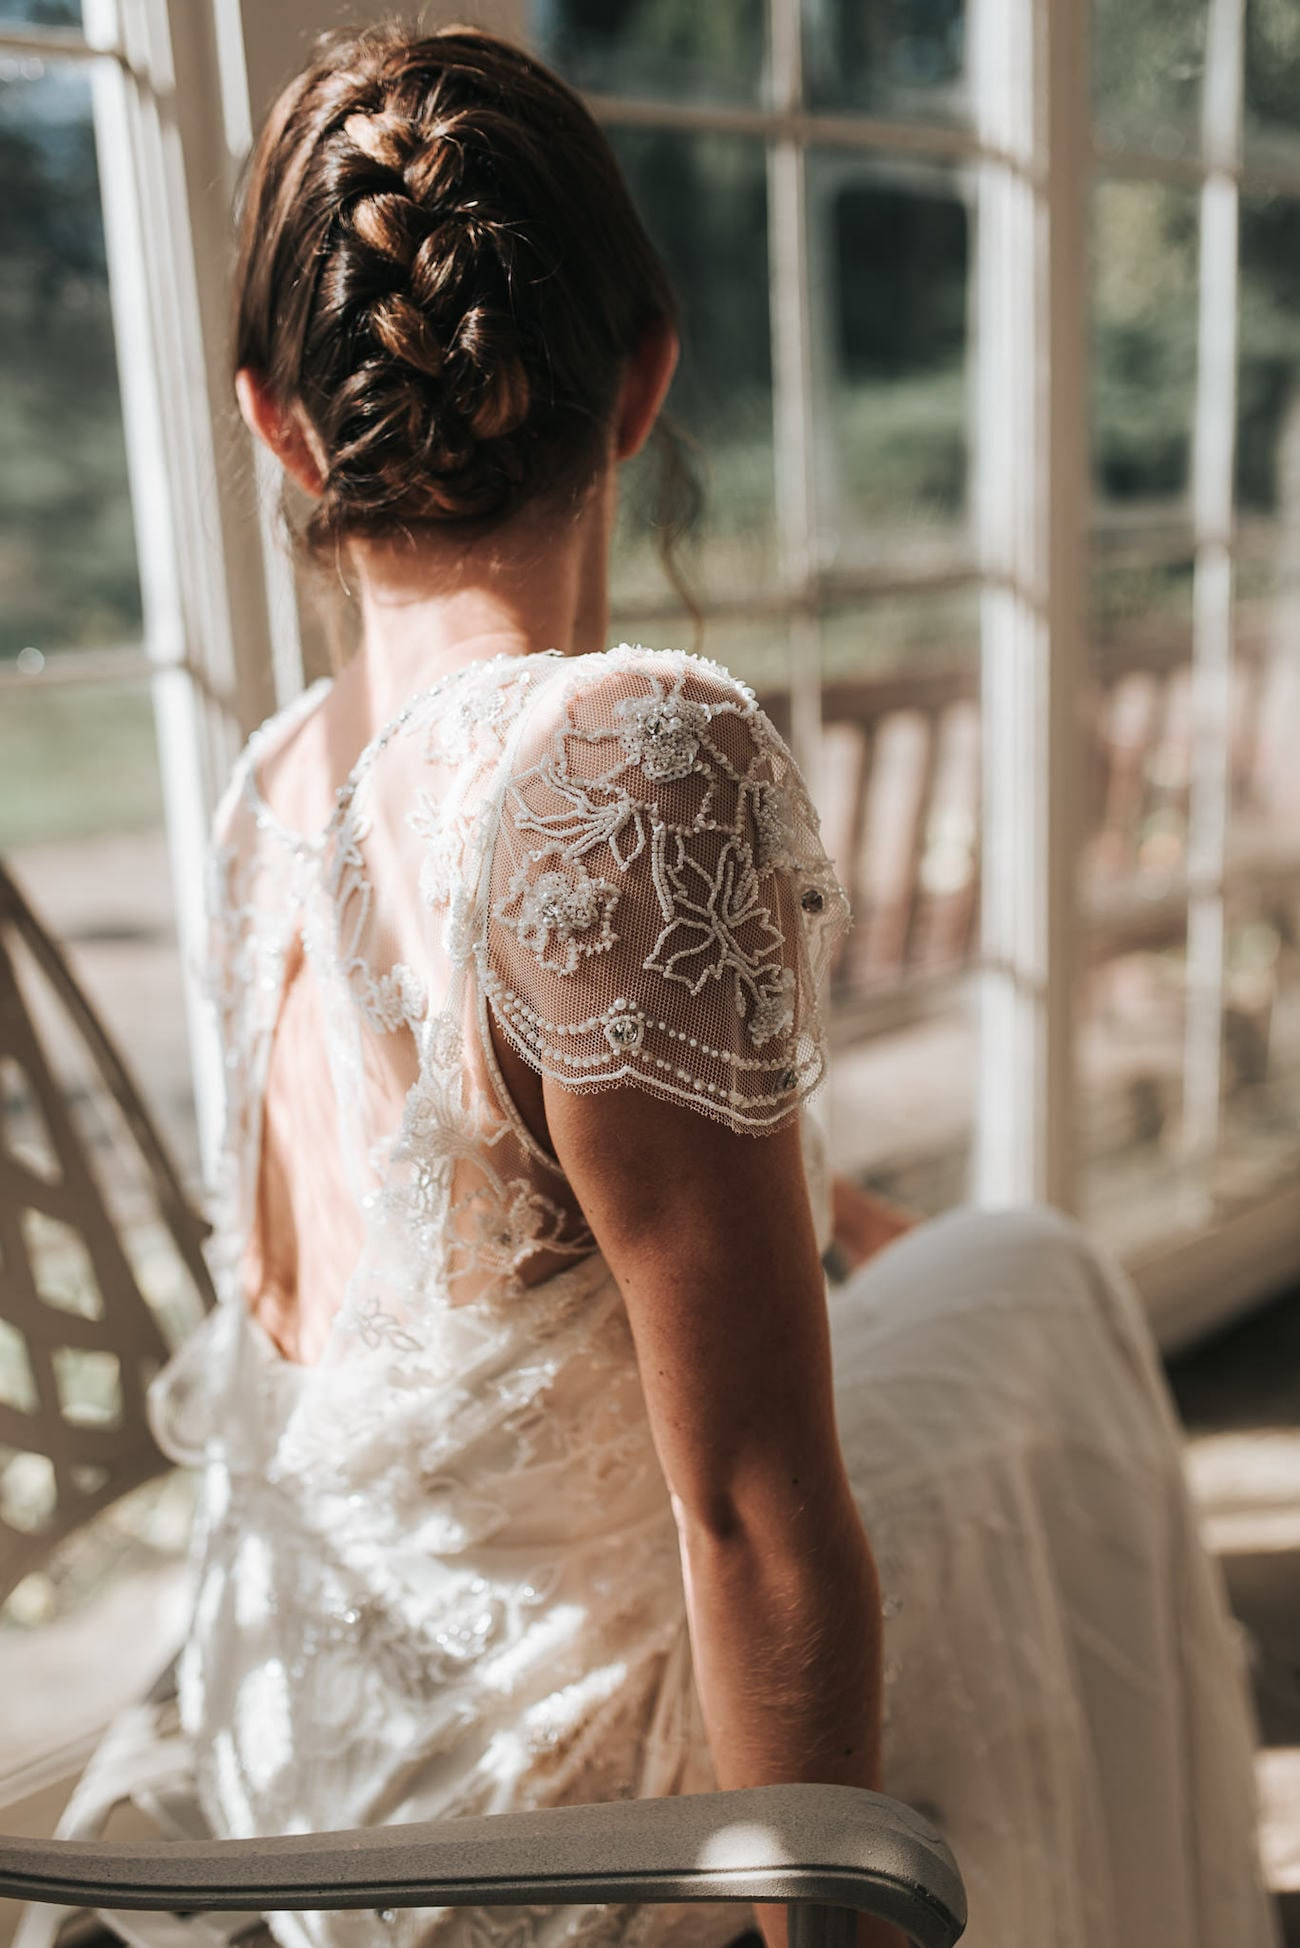 Jenny Packham Wedding Dress | Image: Pear & Bear Photography